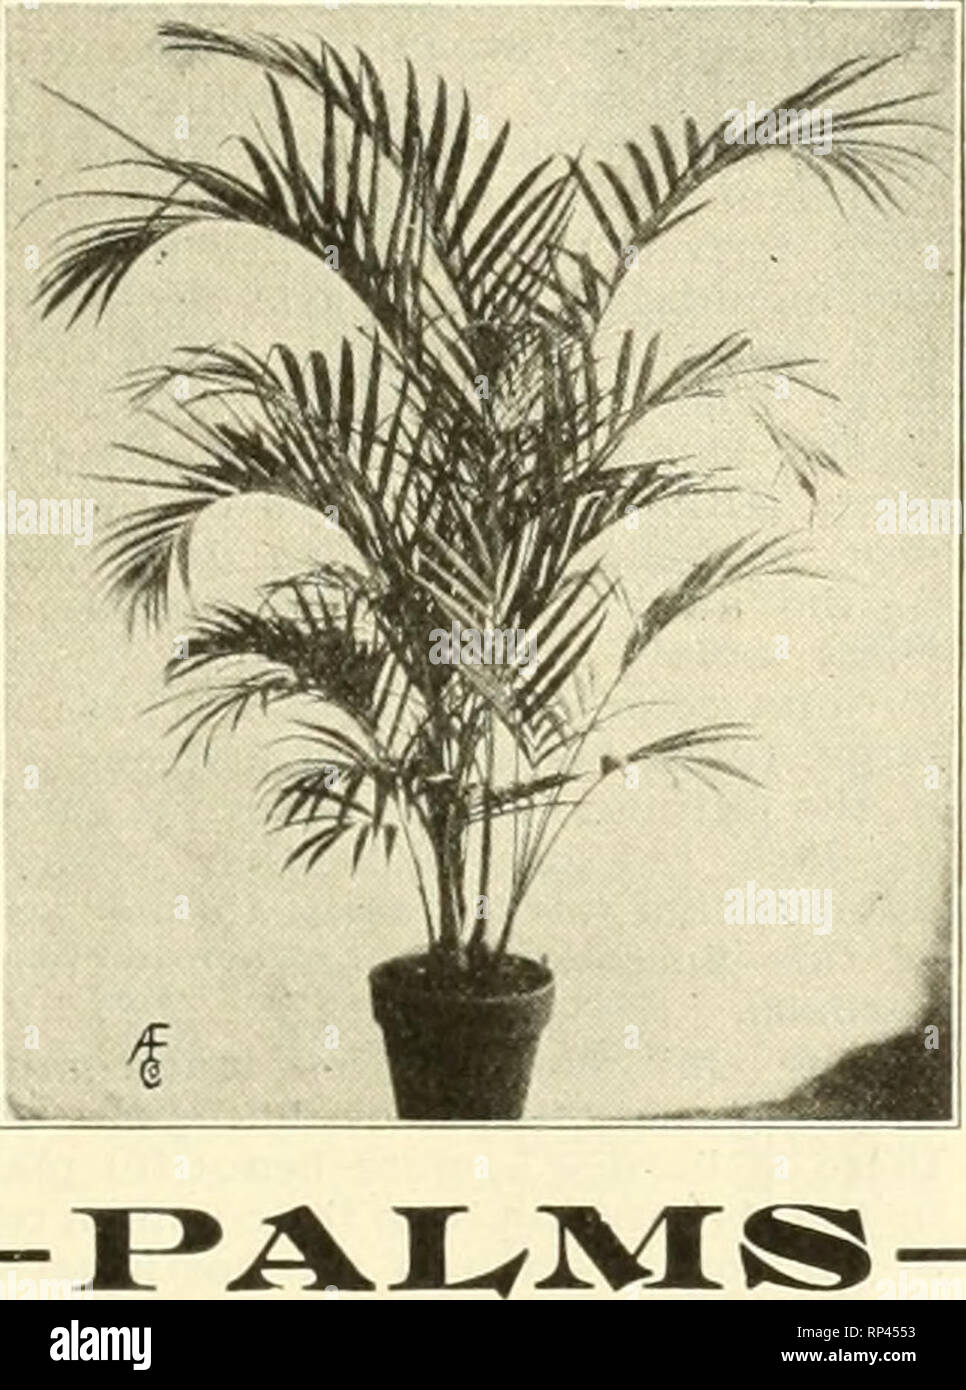 . The American florist : a weekly journal for the trade. Floriculture; Florists. Pteris Wilson WITTBOLD'S Plants ARE BEST 1 fe 1 ^ p 'i' Pteris Serrulata Order Today and Avoid the Risk of Cold Weather Shipments Bedding Plants p. de Bailey 2-ln., $2.60 per Aohryanthes, 100. Ageratum, Stella GorDey and Princess Pauline, 2-ln., $2.00 per 100. COLEUS, 2-inoh. Per 100 Pflster, red and yellow 12.00 Beckwlth's Gem 2.00 Golden Bedder g.OO Verschalteltll 2.00 Geraniums, S. A. Nutt, Rose, 2-ls., $2,00 per 100. Gnapballum Lanatum, 2 In., $2.00 per 100. Heliotrope, 2'ln., $2.00 per 100. Ivy, German, 21n.. - Stock Image